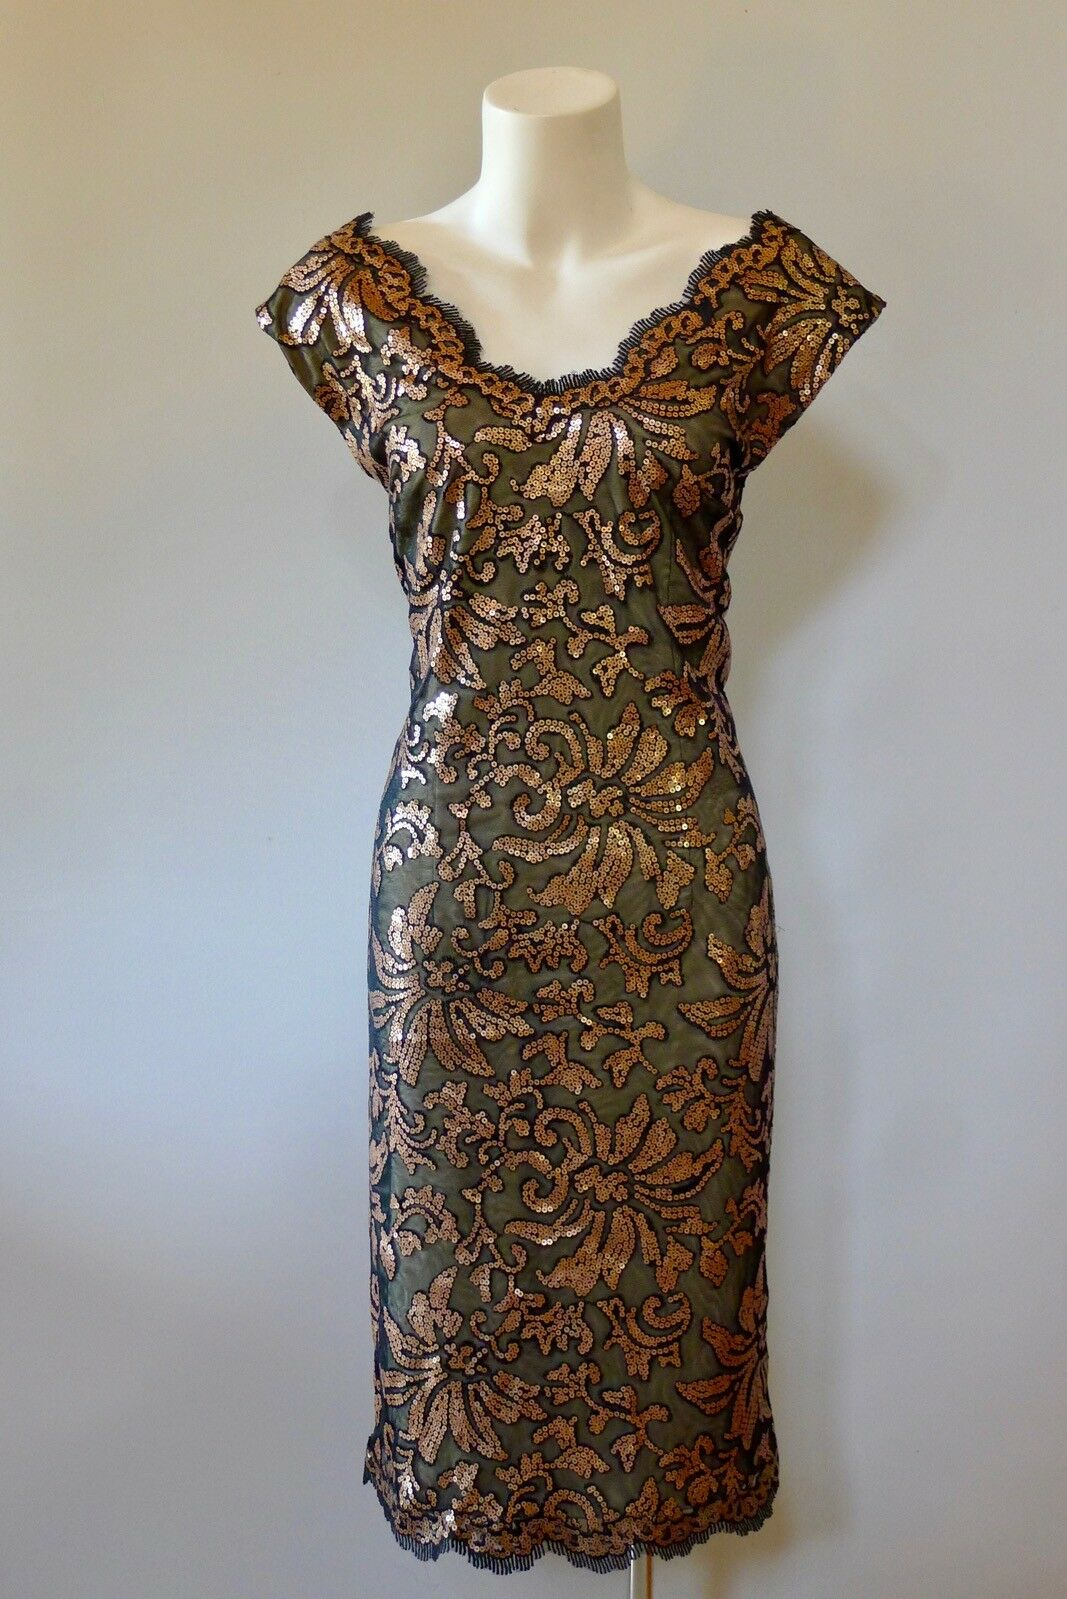 Chelsea 12 M  NWOT unused schwarz Gold beaded formal party dress 50s style  mint